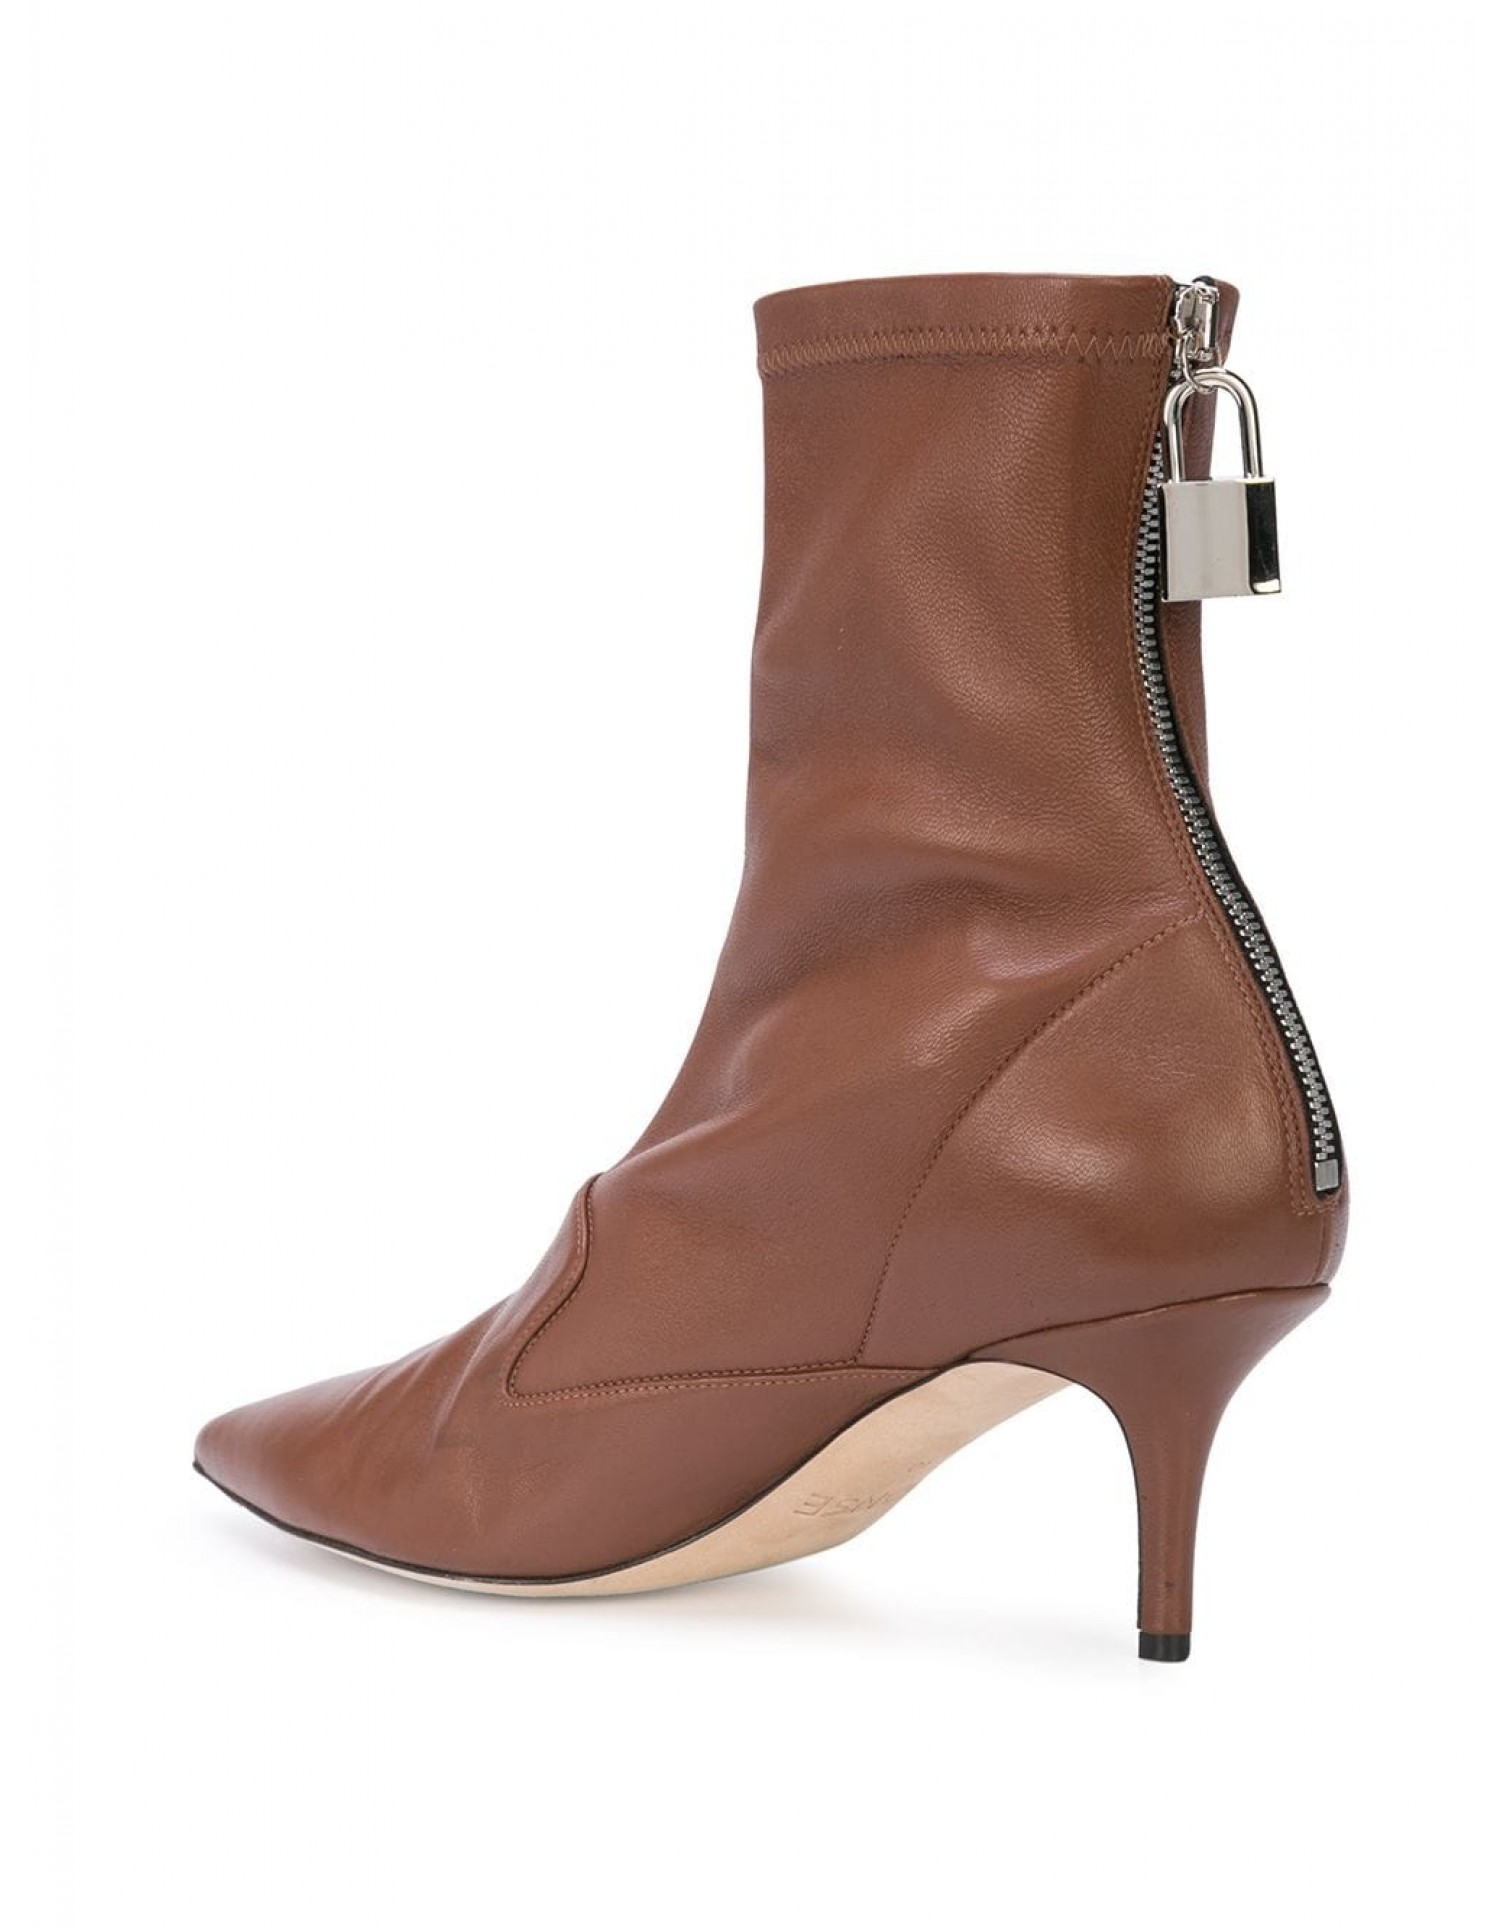 Monse Women's Brown Leather Lock Bootie Top View